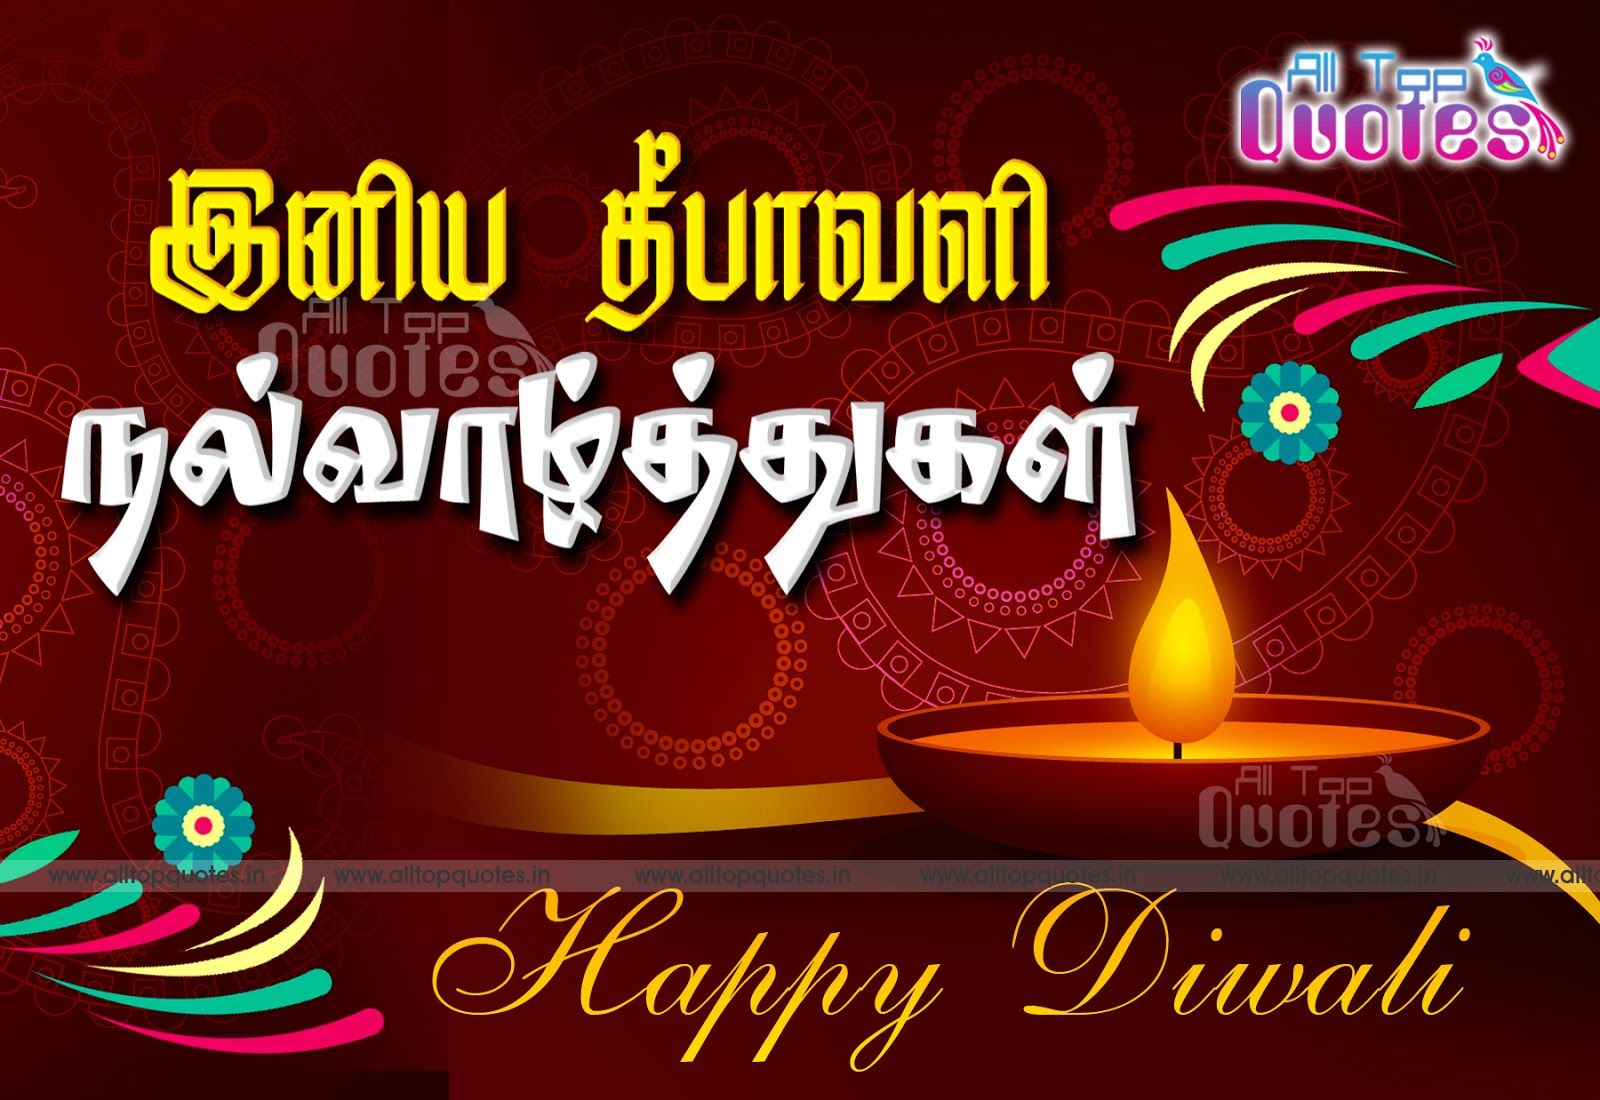 Pin by prakash c on diwali wish pinterest happy diwali pictures happy diwali pictures tamil font diwali quotes wish quotes message quotes e cards hd images free download free downloads tamil greetings m4hsunfo